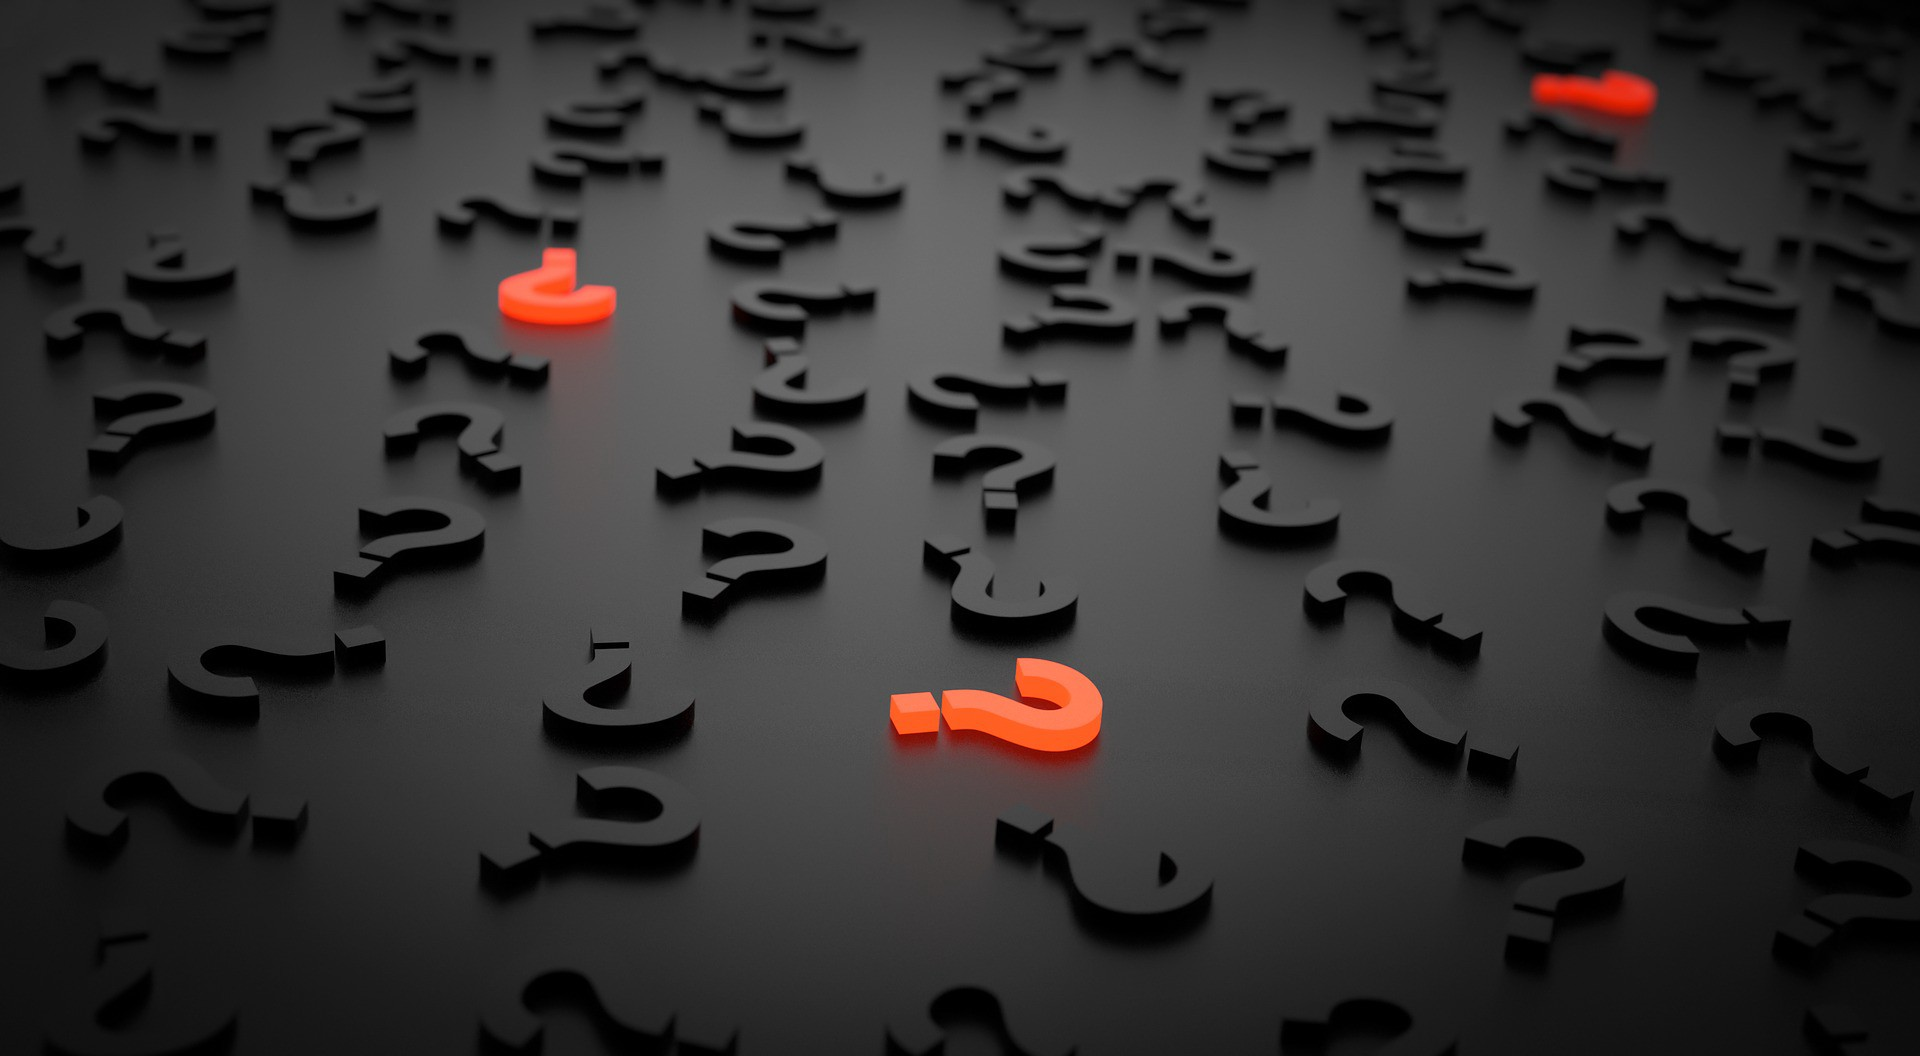 A lot of question marks scattered on a table. 3?'s are highlighted in orange while the rest are black.